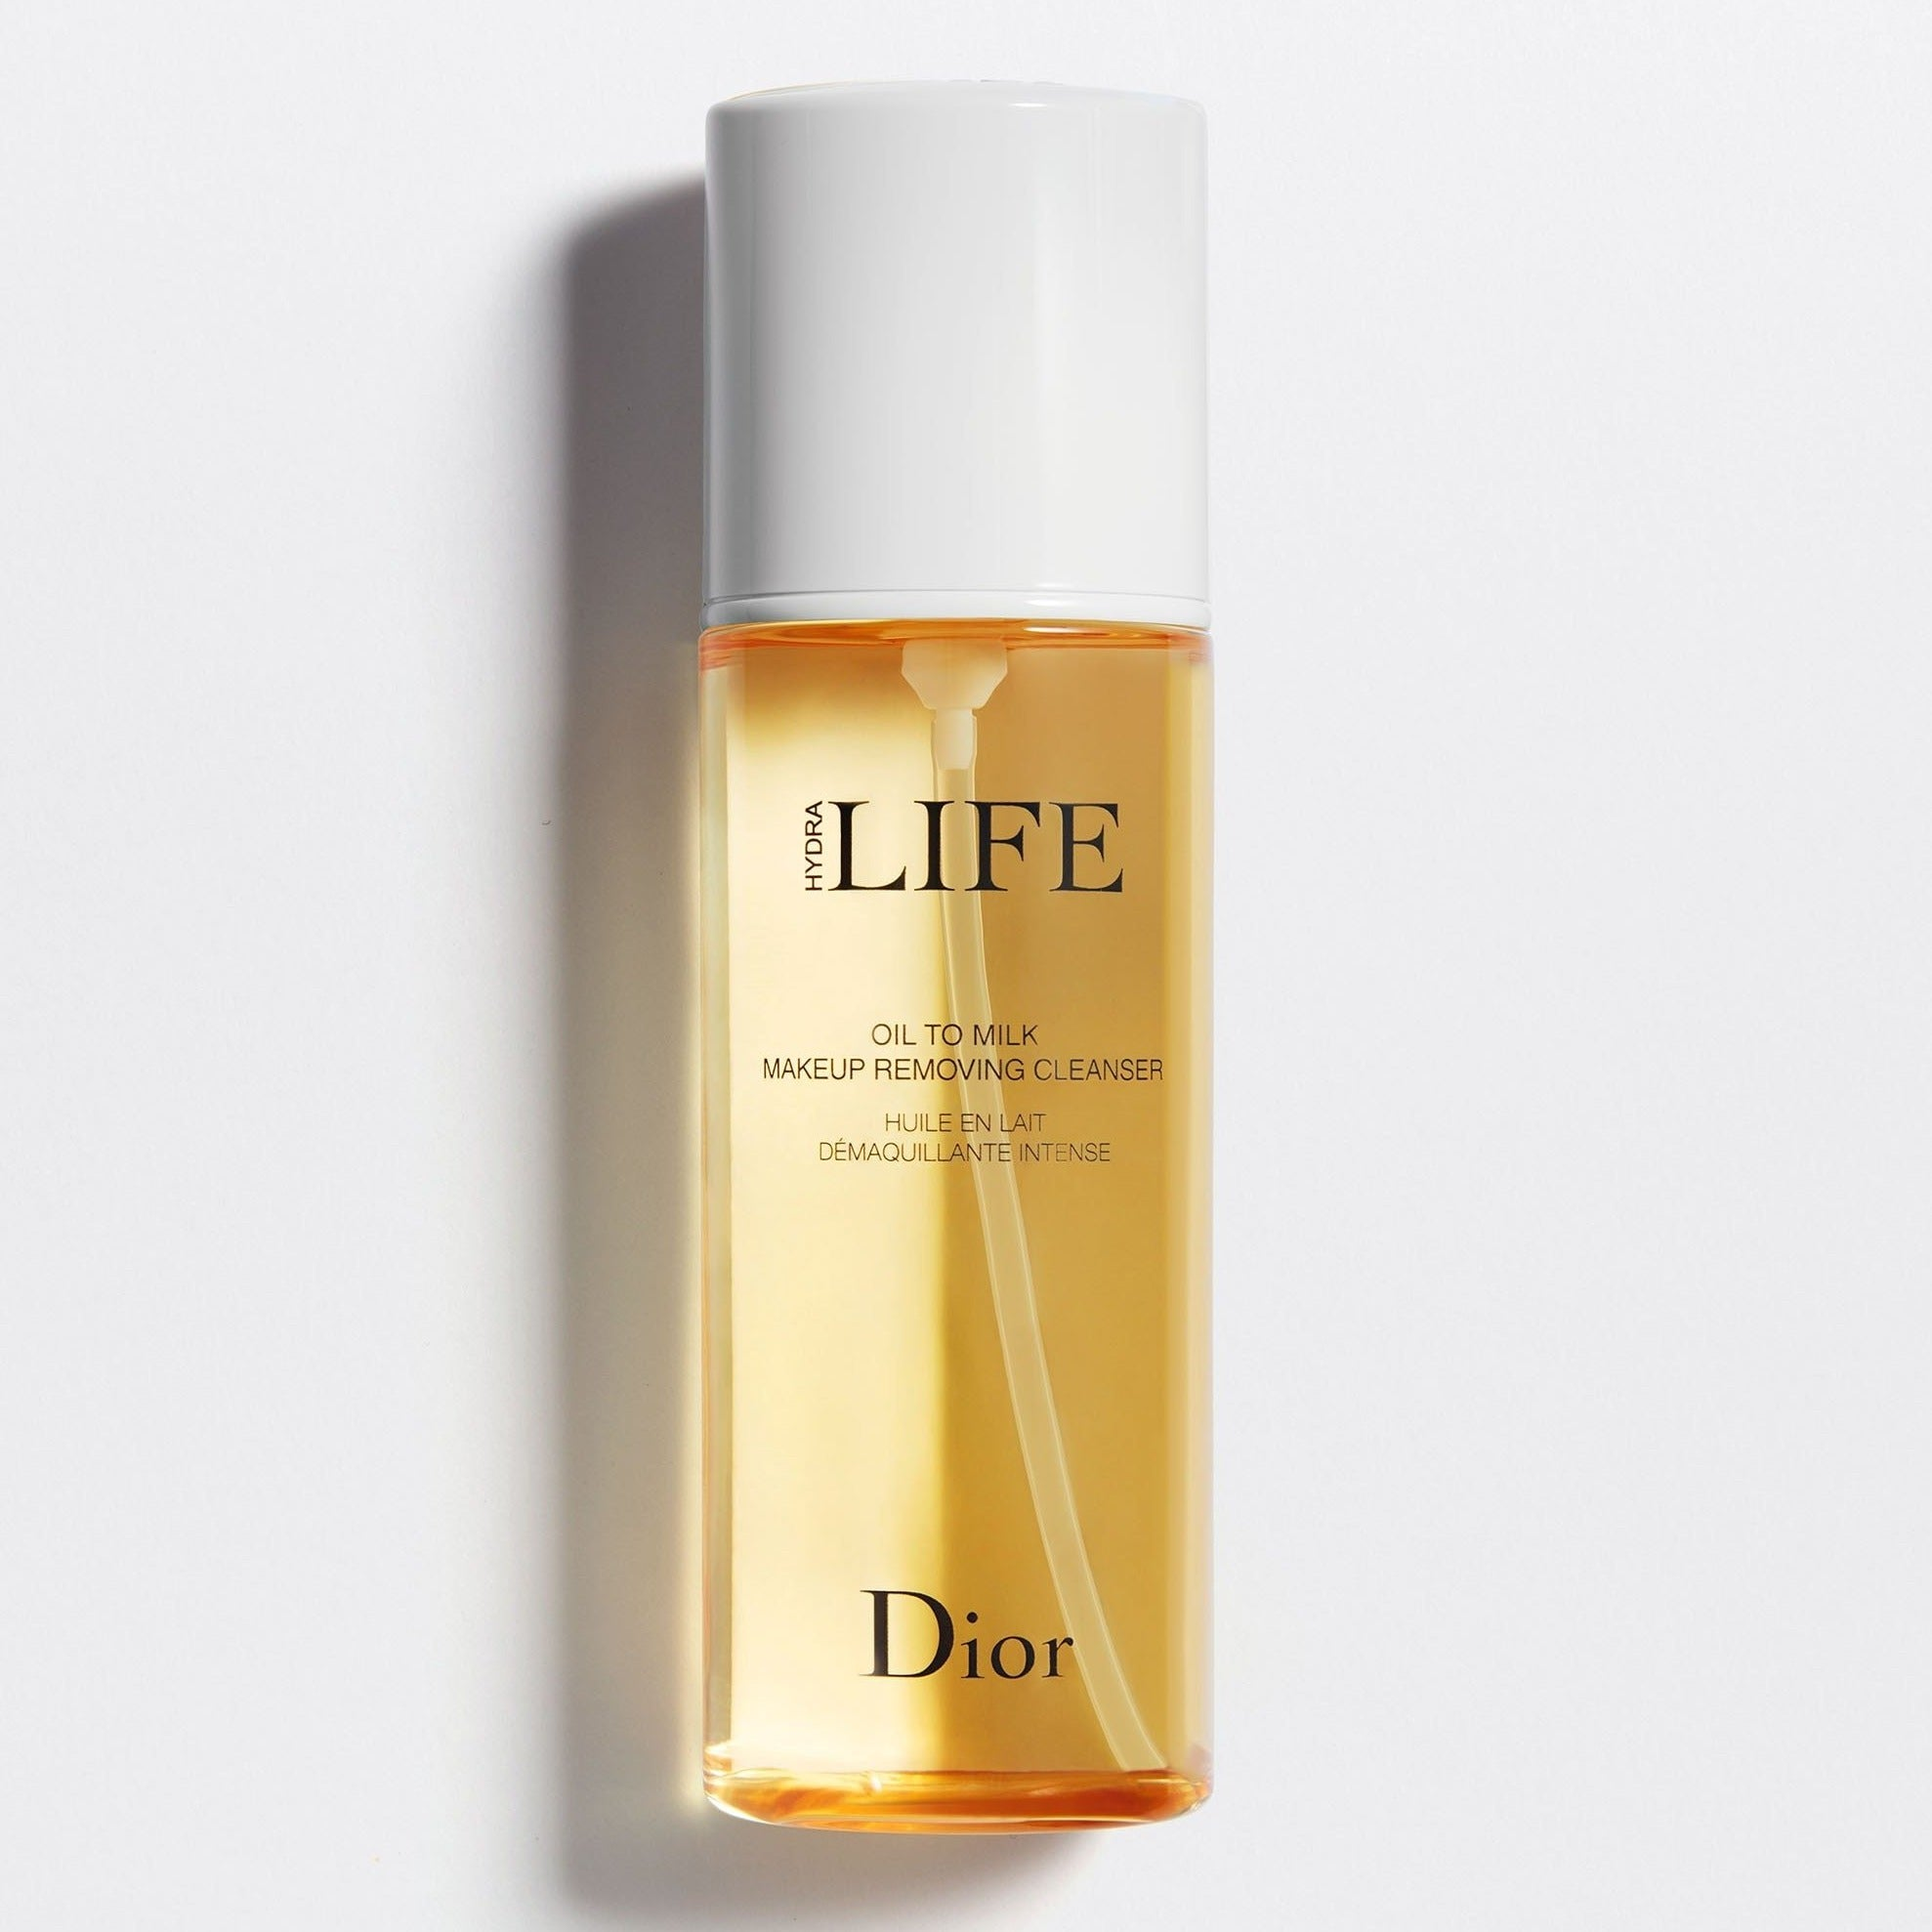 DIOR HYDRA LIFE | Oil to milk - makeup removing cleanser